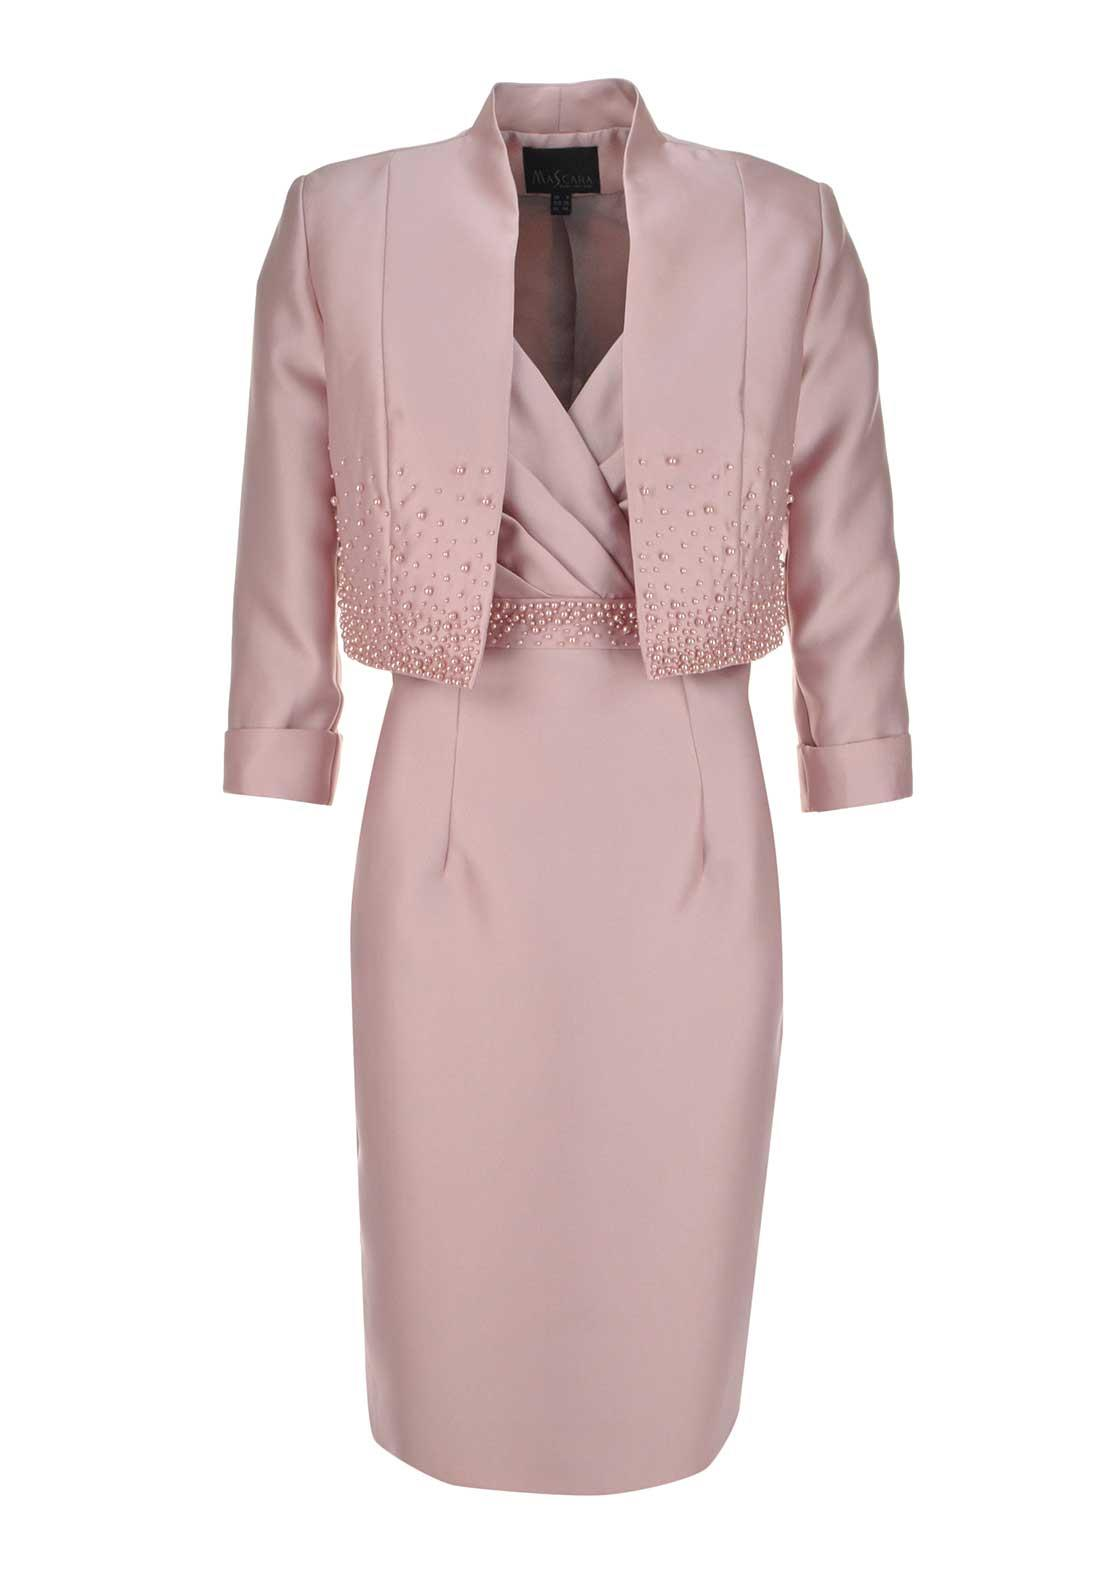 Mascara Special Occasion Pearl Embellished Dress And Jacket, Rose Pink